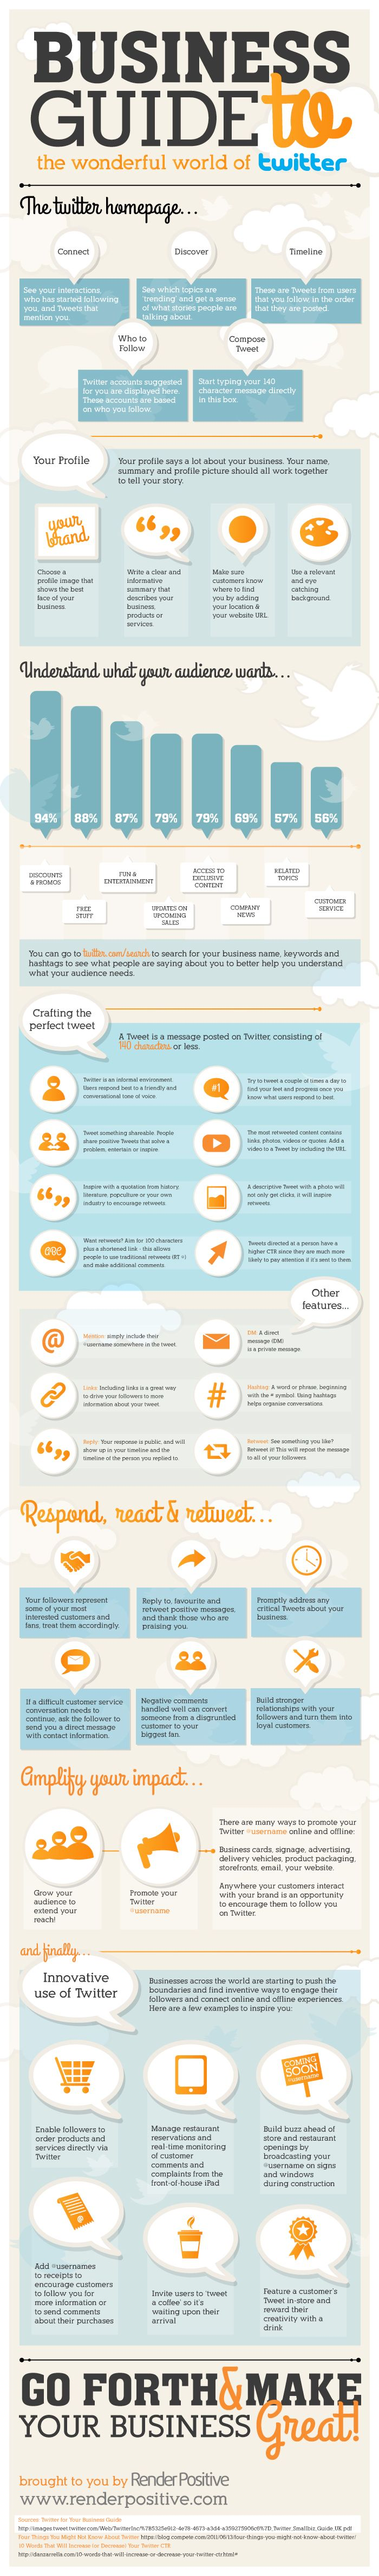 twitter-for-business-infographic.jpg